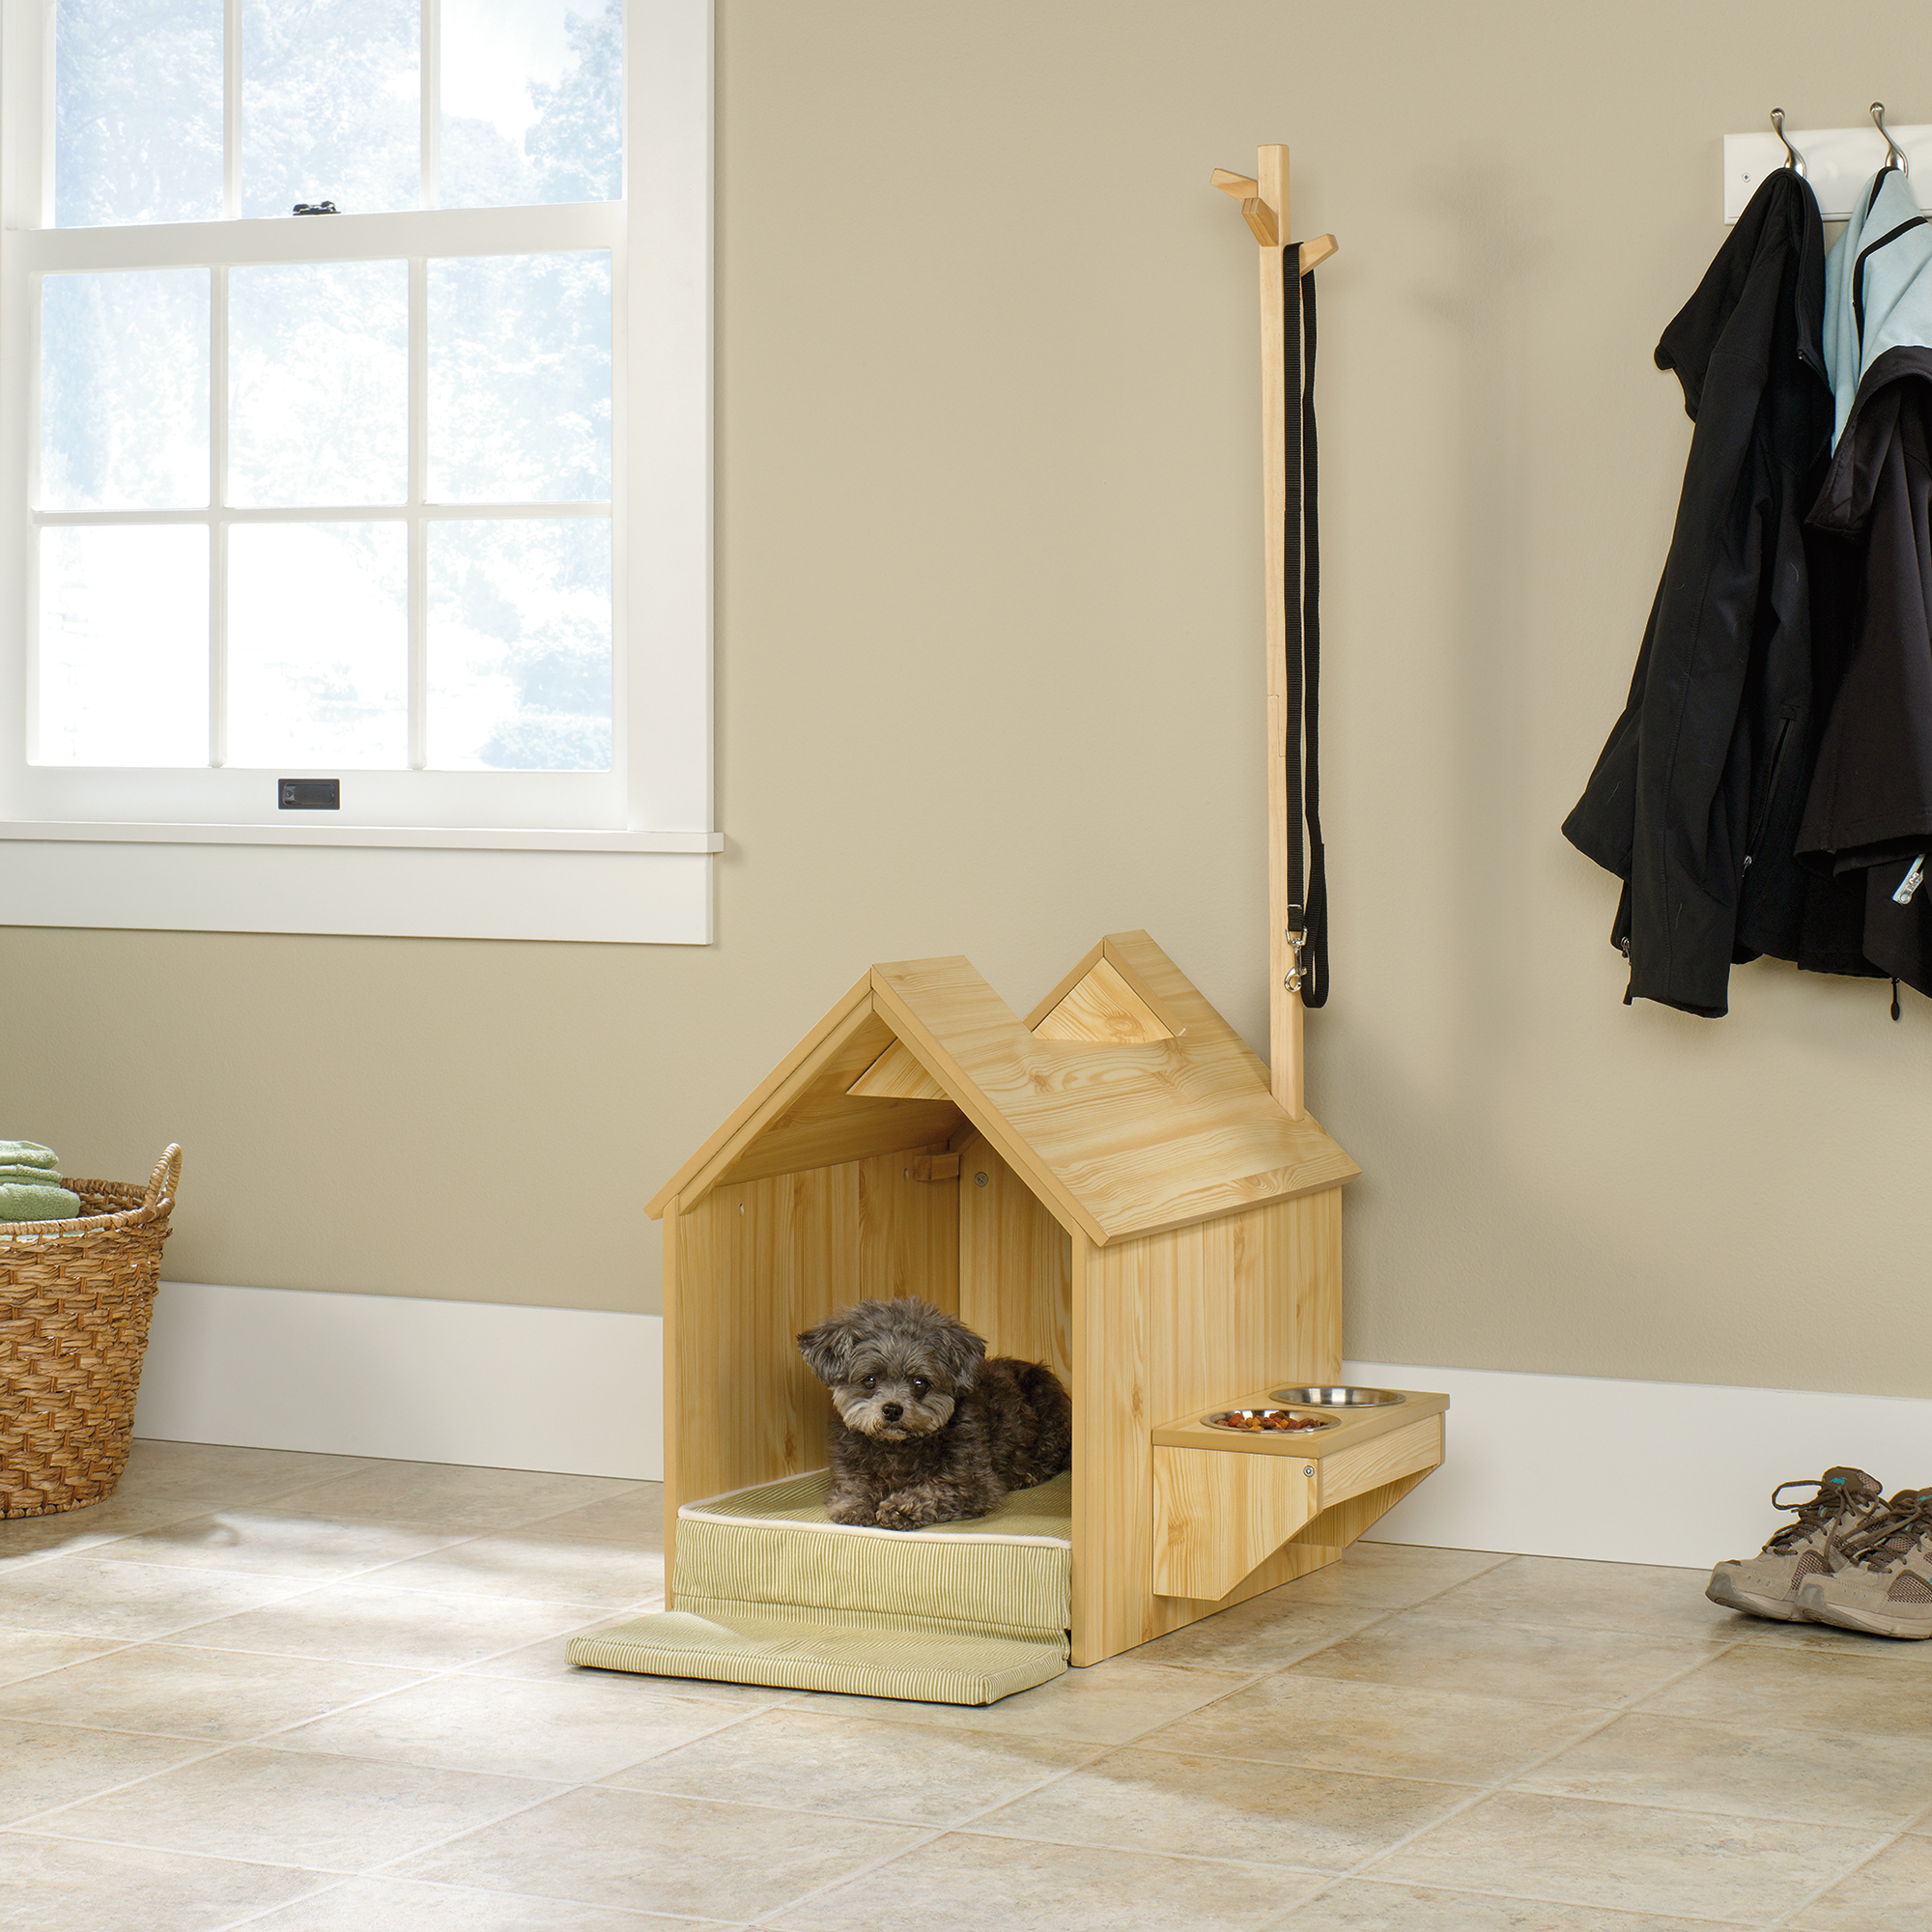 Beautiful Inside Dog House ... indoor dog house furniture